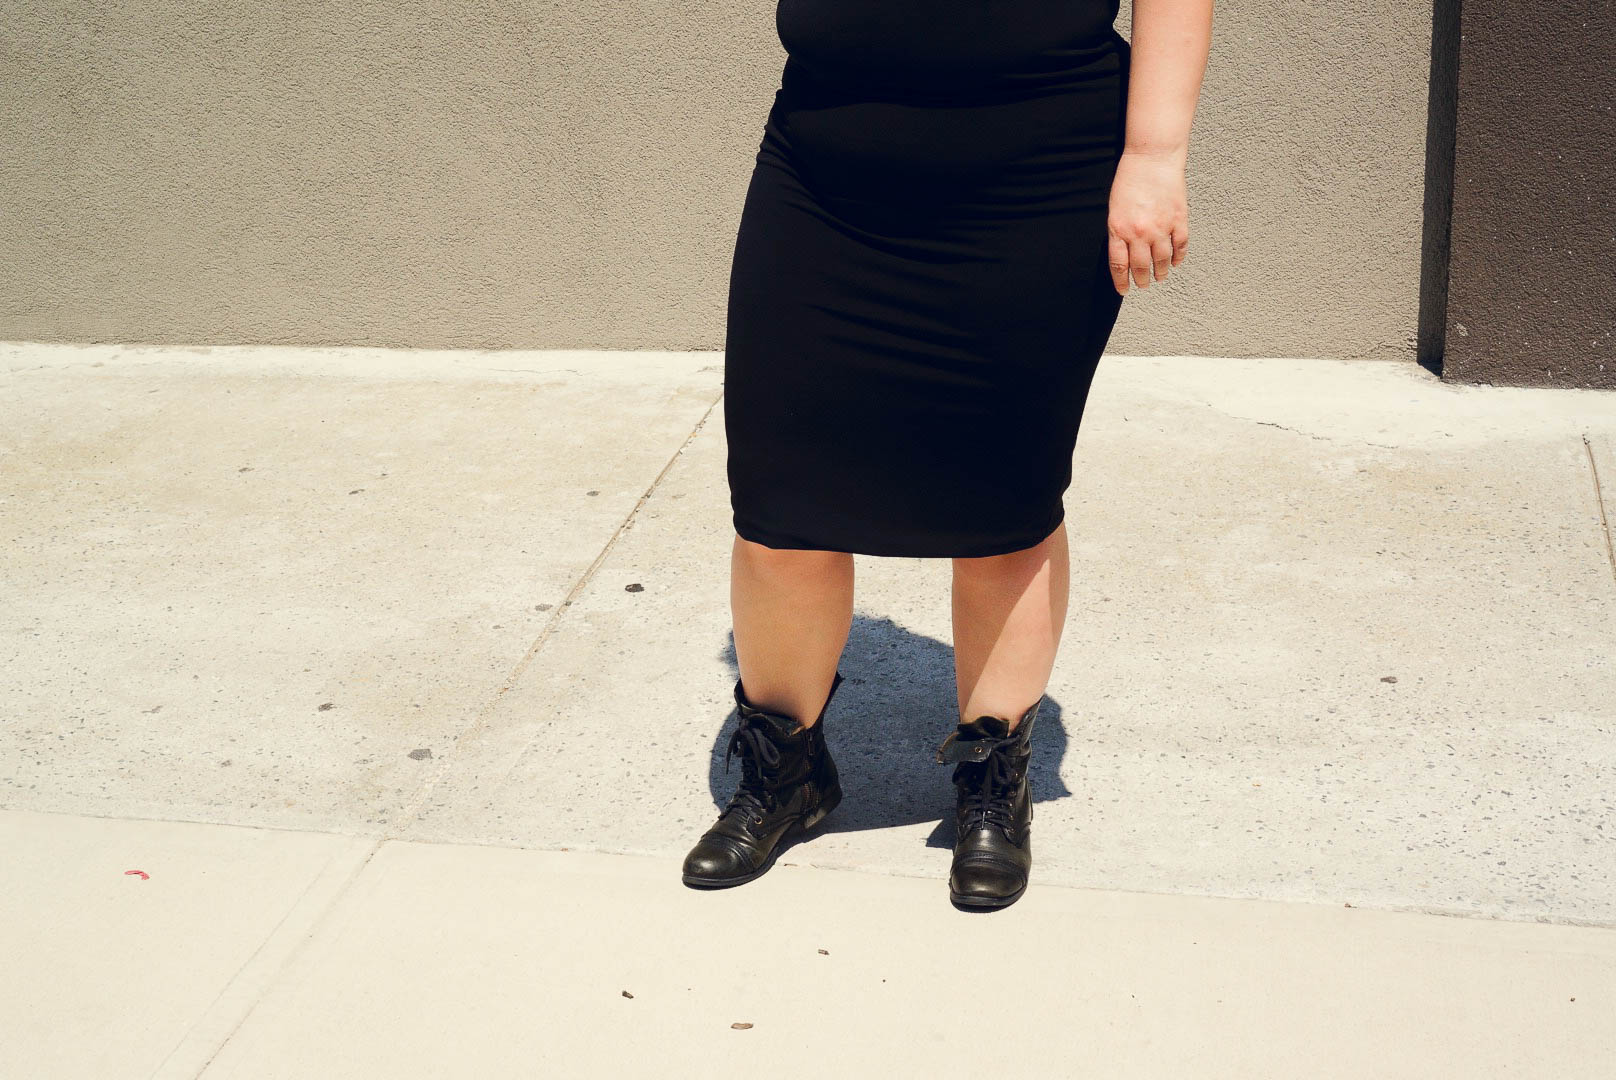 MS of Steve Madden Combat Boots